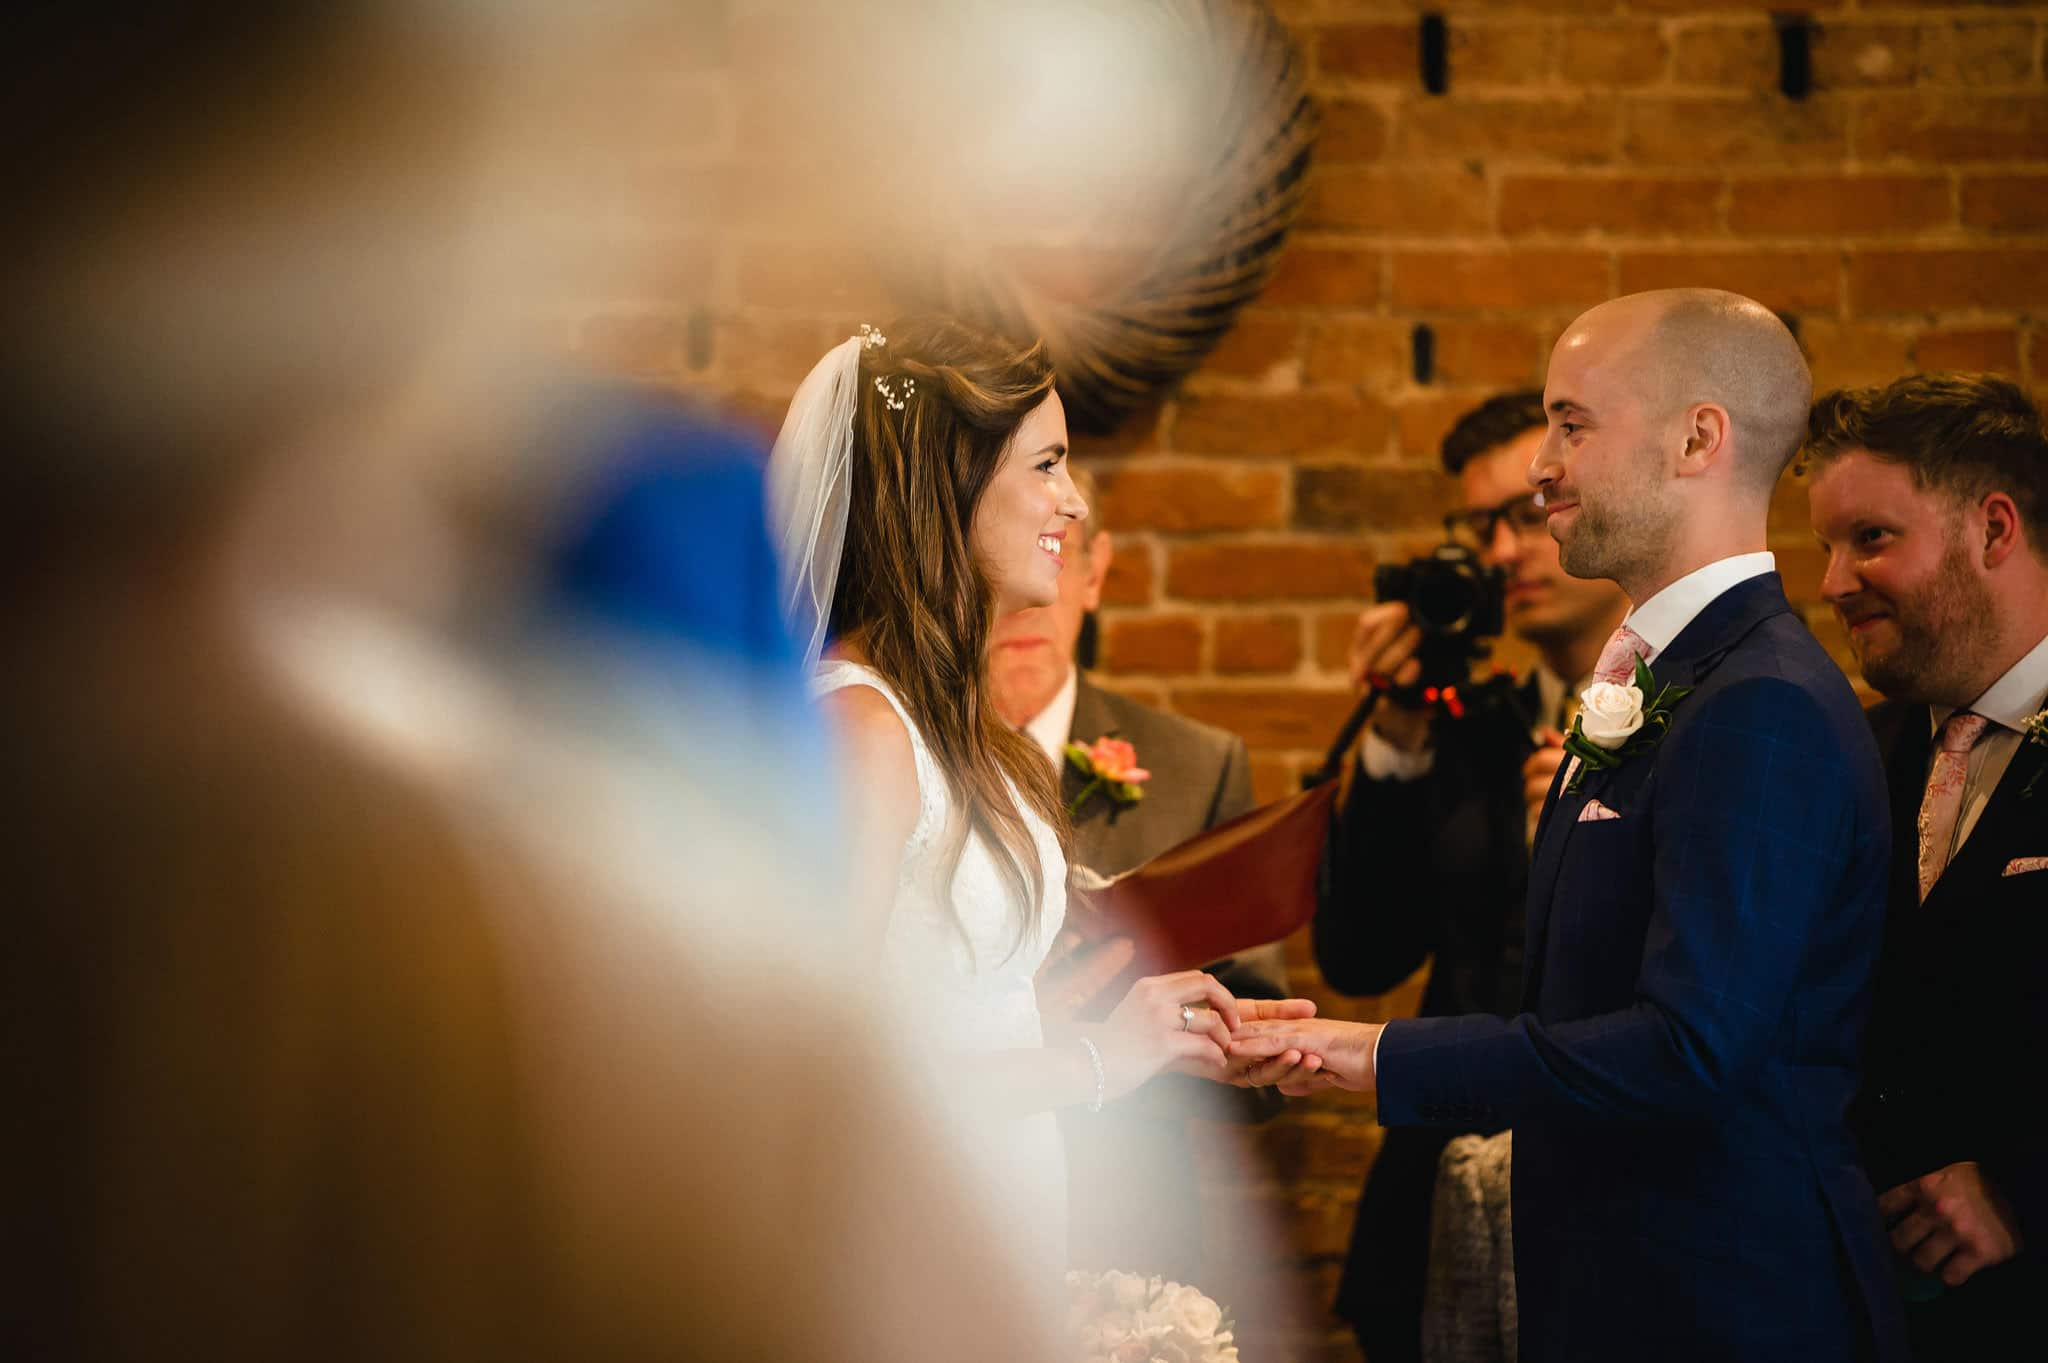 Wedding at Redhouse Barn in Stoke Prior, Worcestershire 65